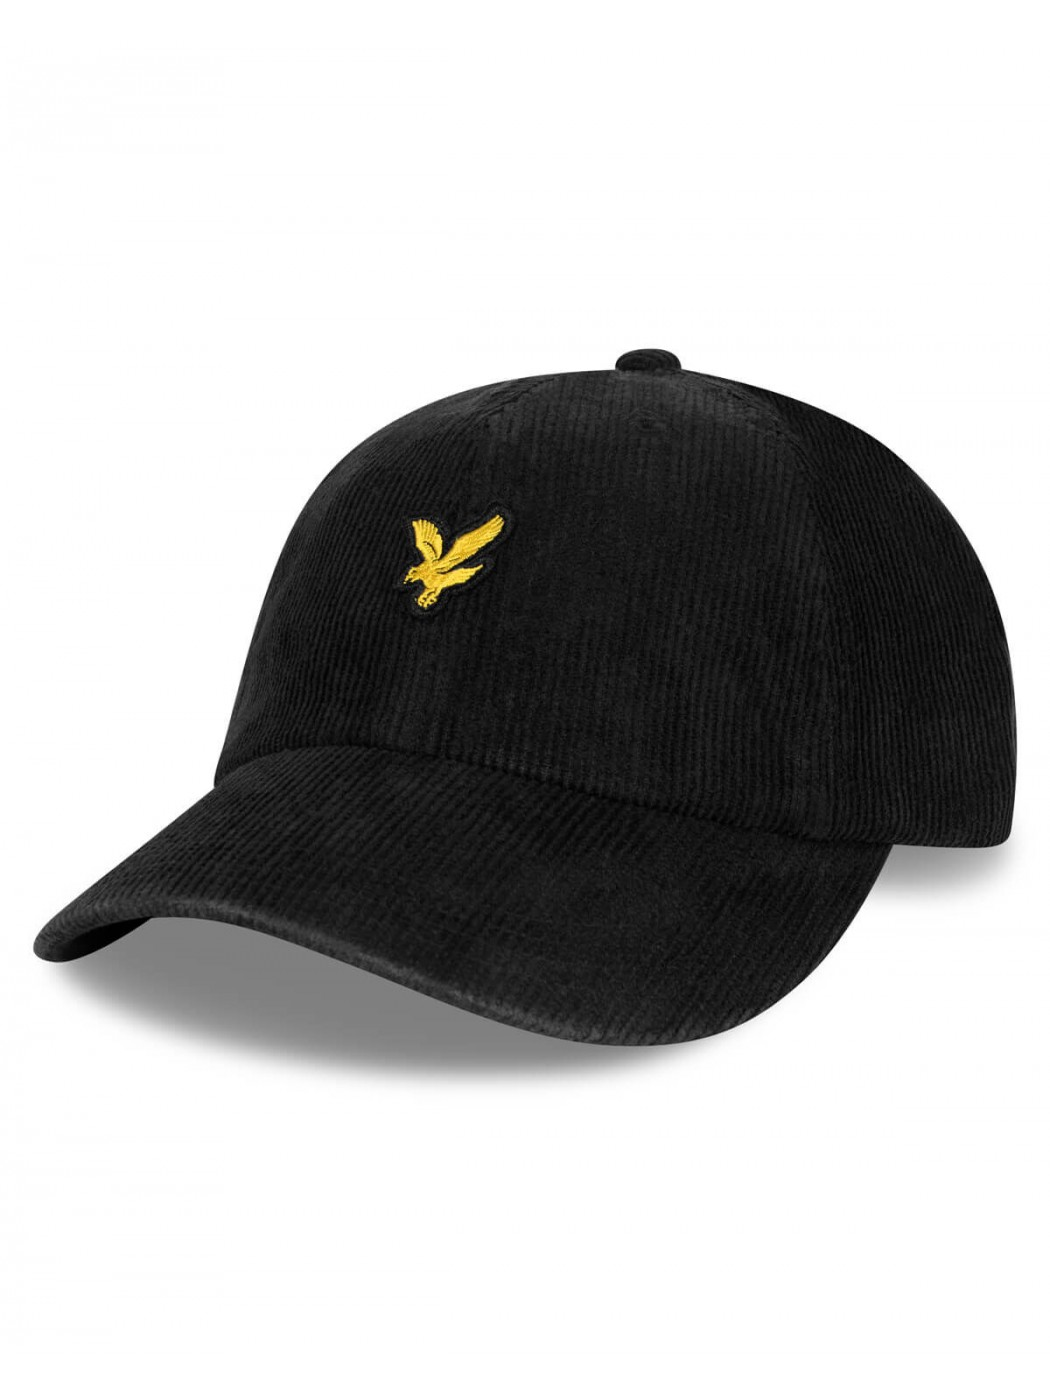 BERRETTO DA BASEBALL LYLE & SCOTT HE1301A 572